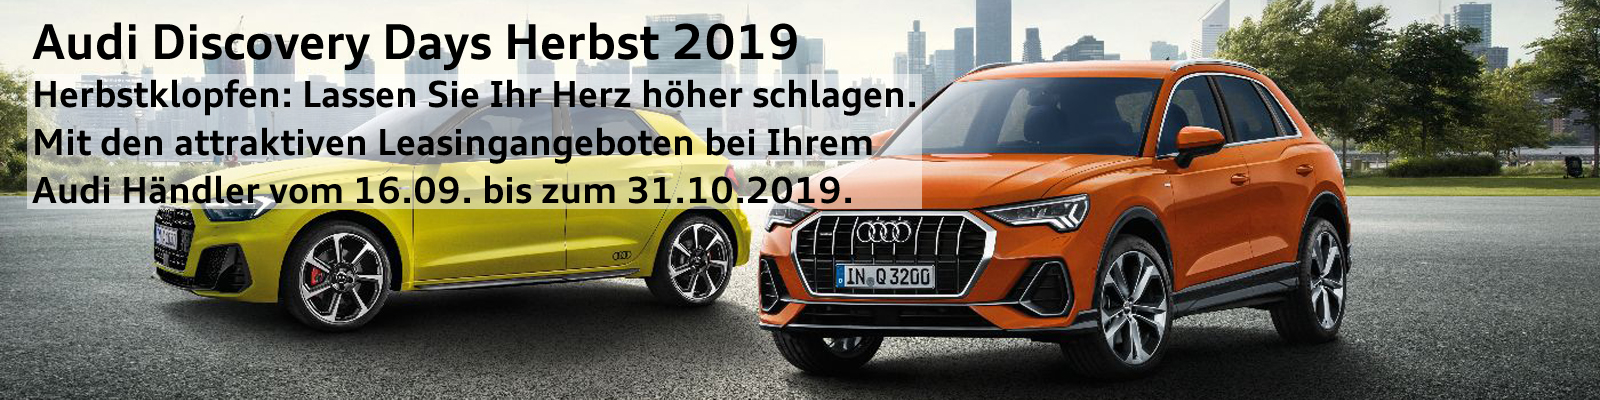 Audi Disocvery Days Herbst 2019